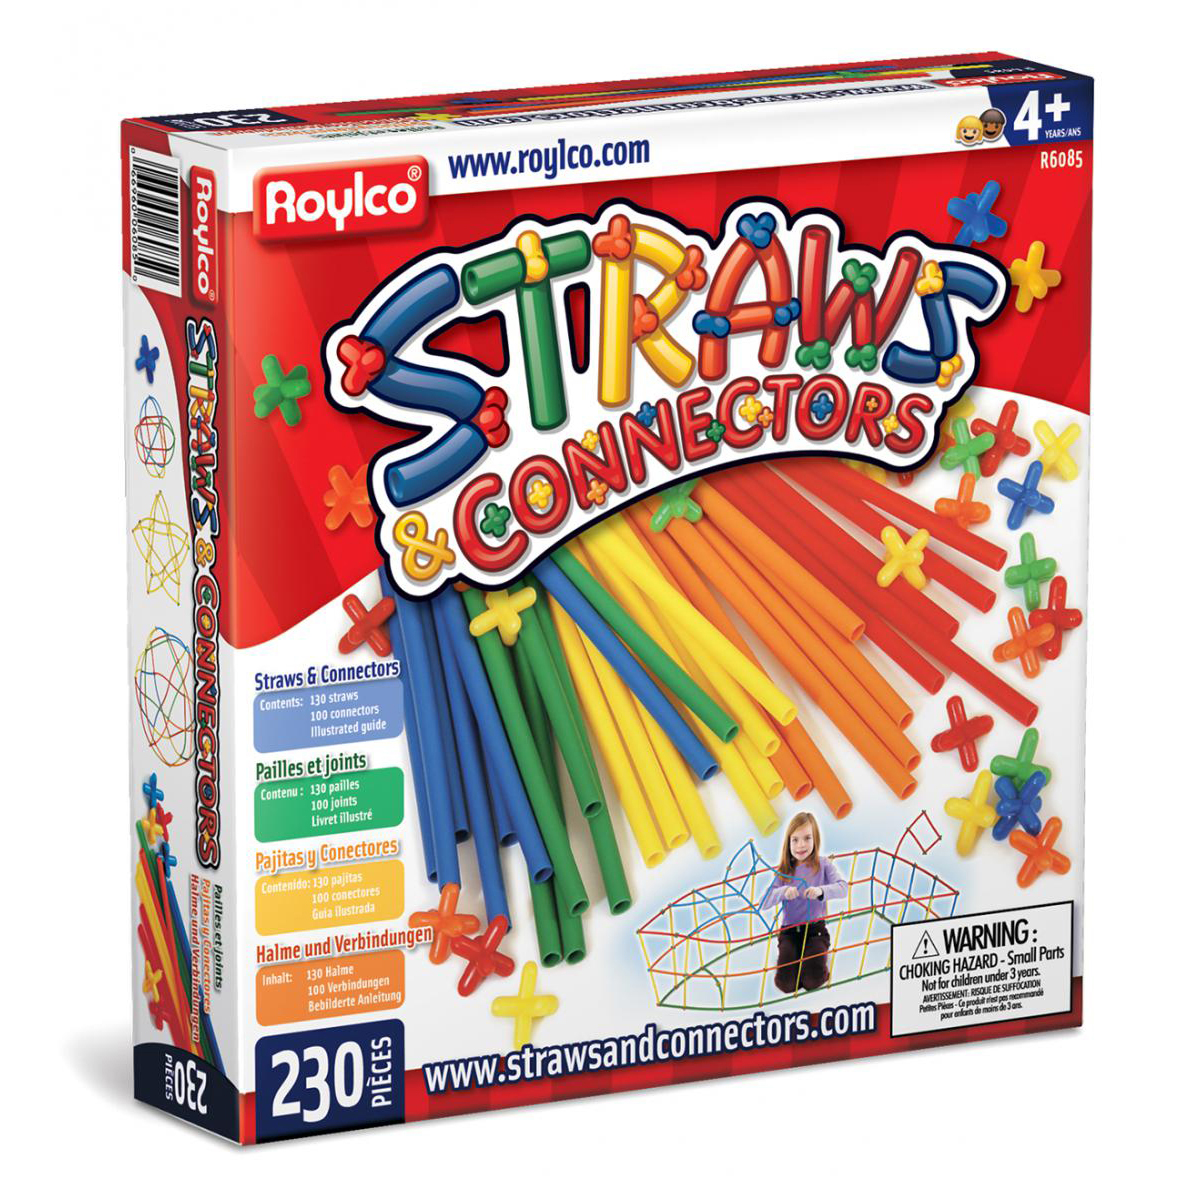 Straws & Connectors Creative Building Set (230 Pieces)